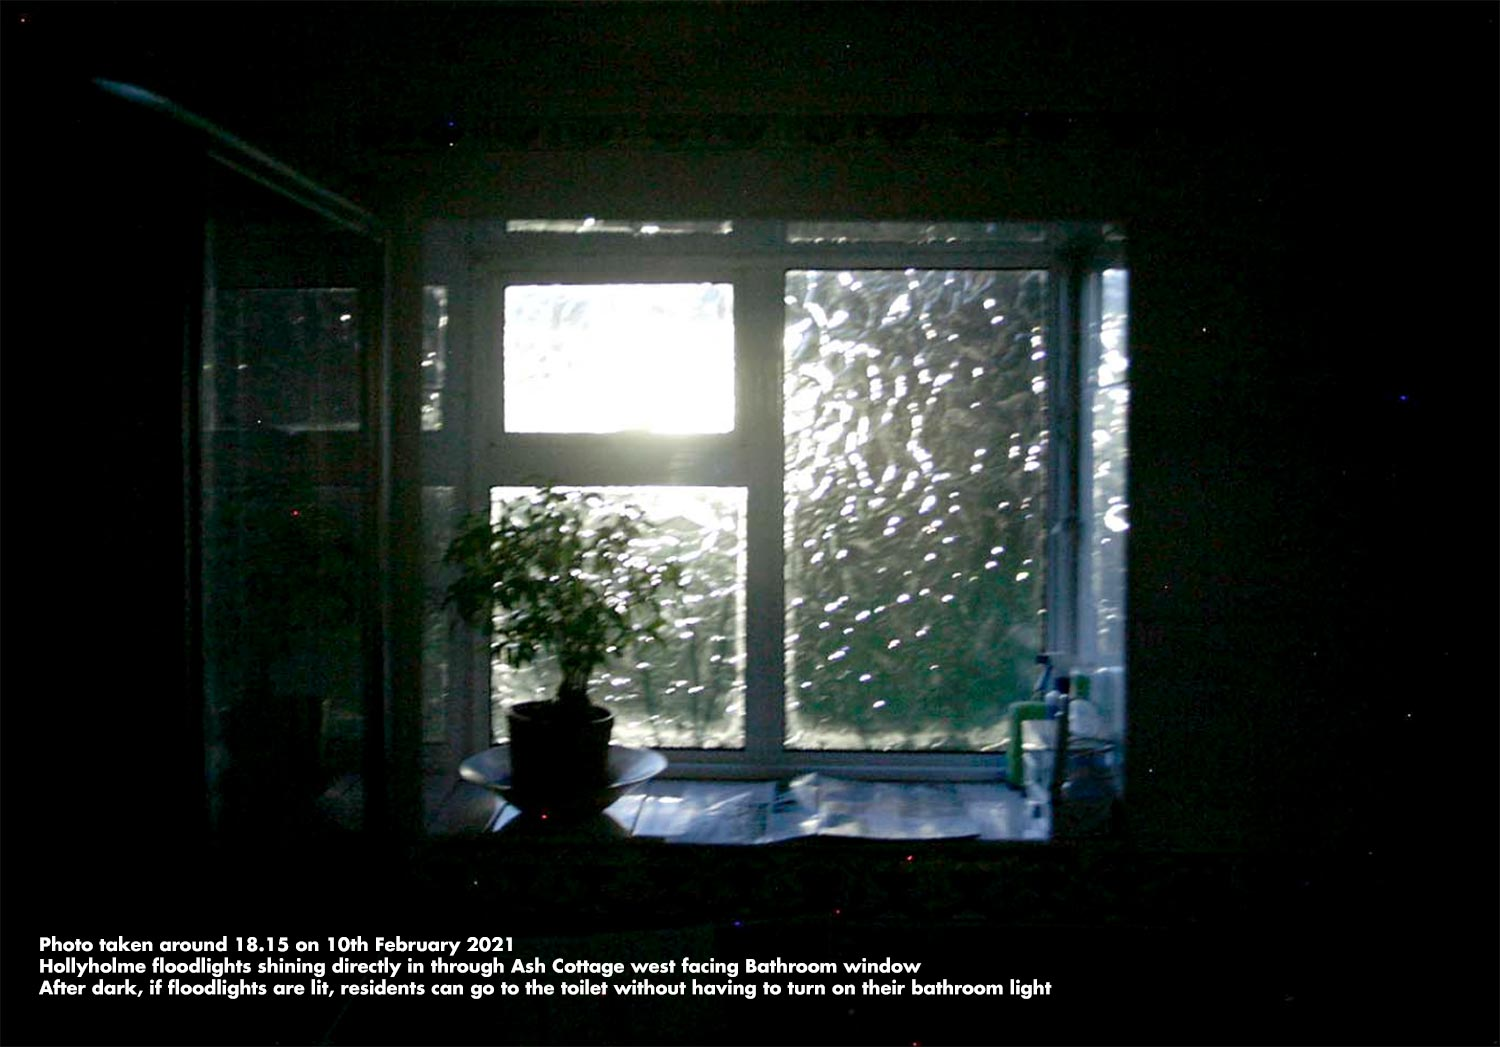 Hollyholme floodlights shown shining directly in through Ash Cottage west facing bathroom window. After dark, if floodlights are lit, you can go to the toilet without having to turn on the bathroom light